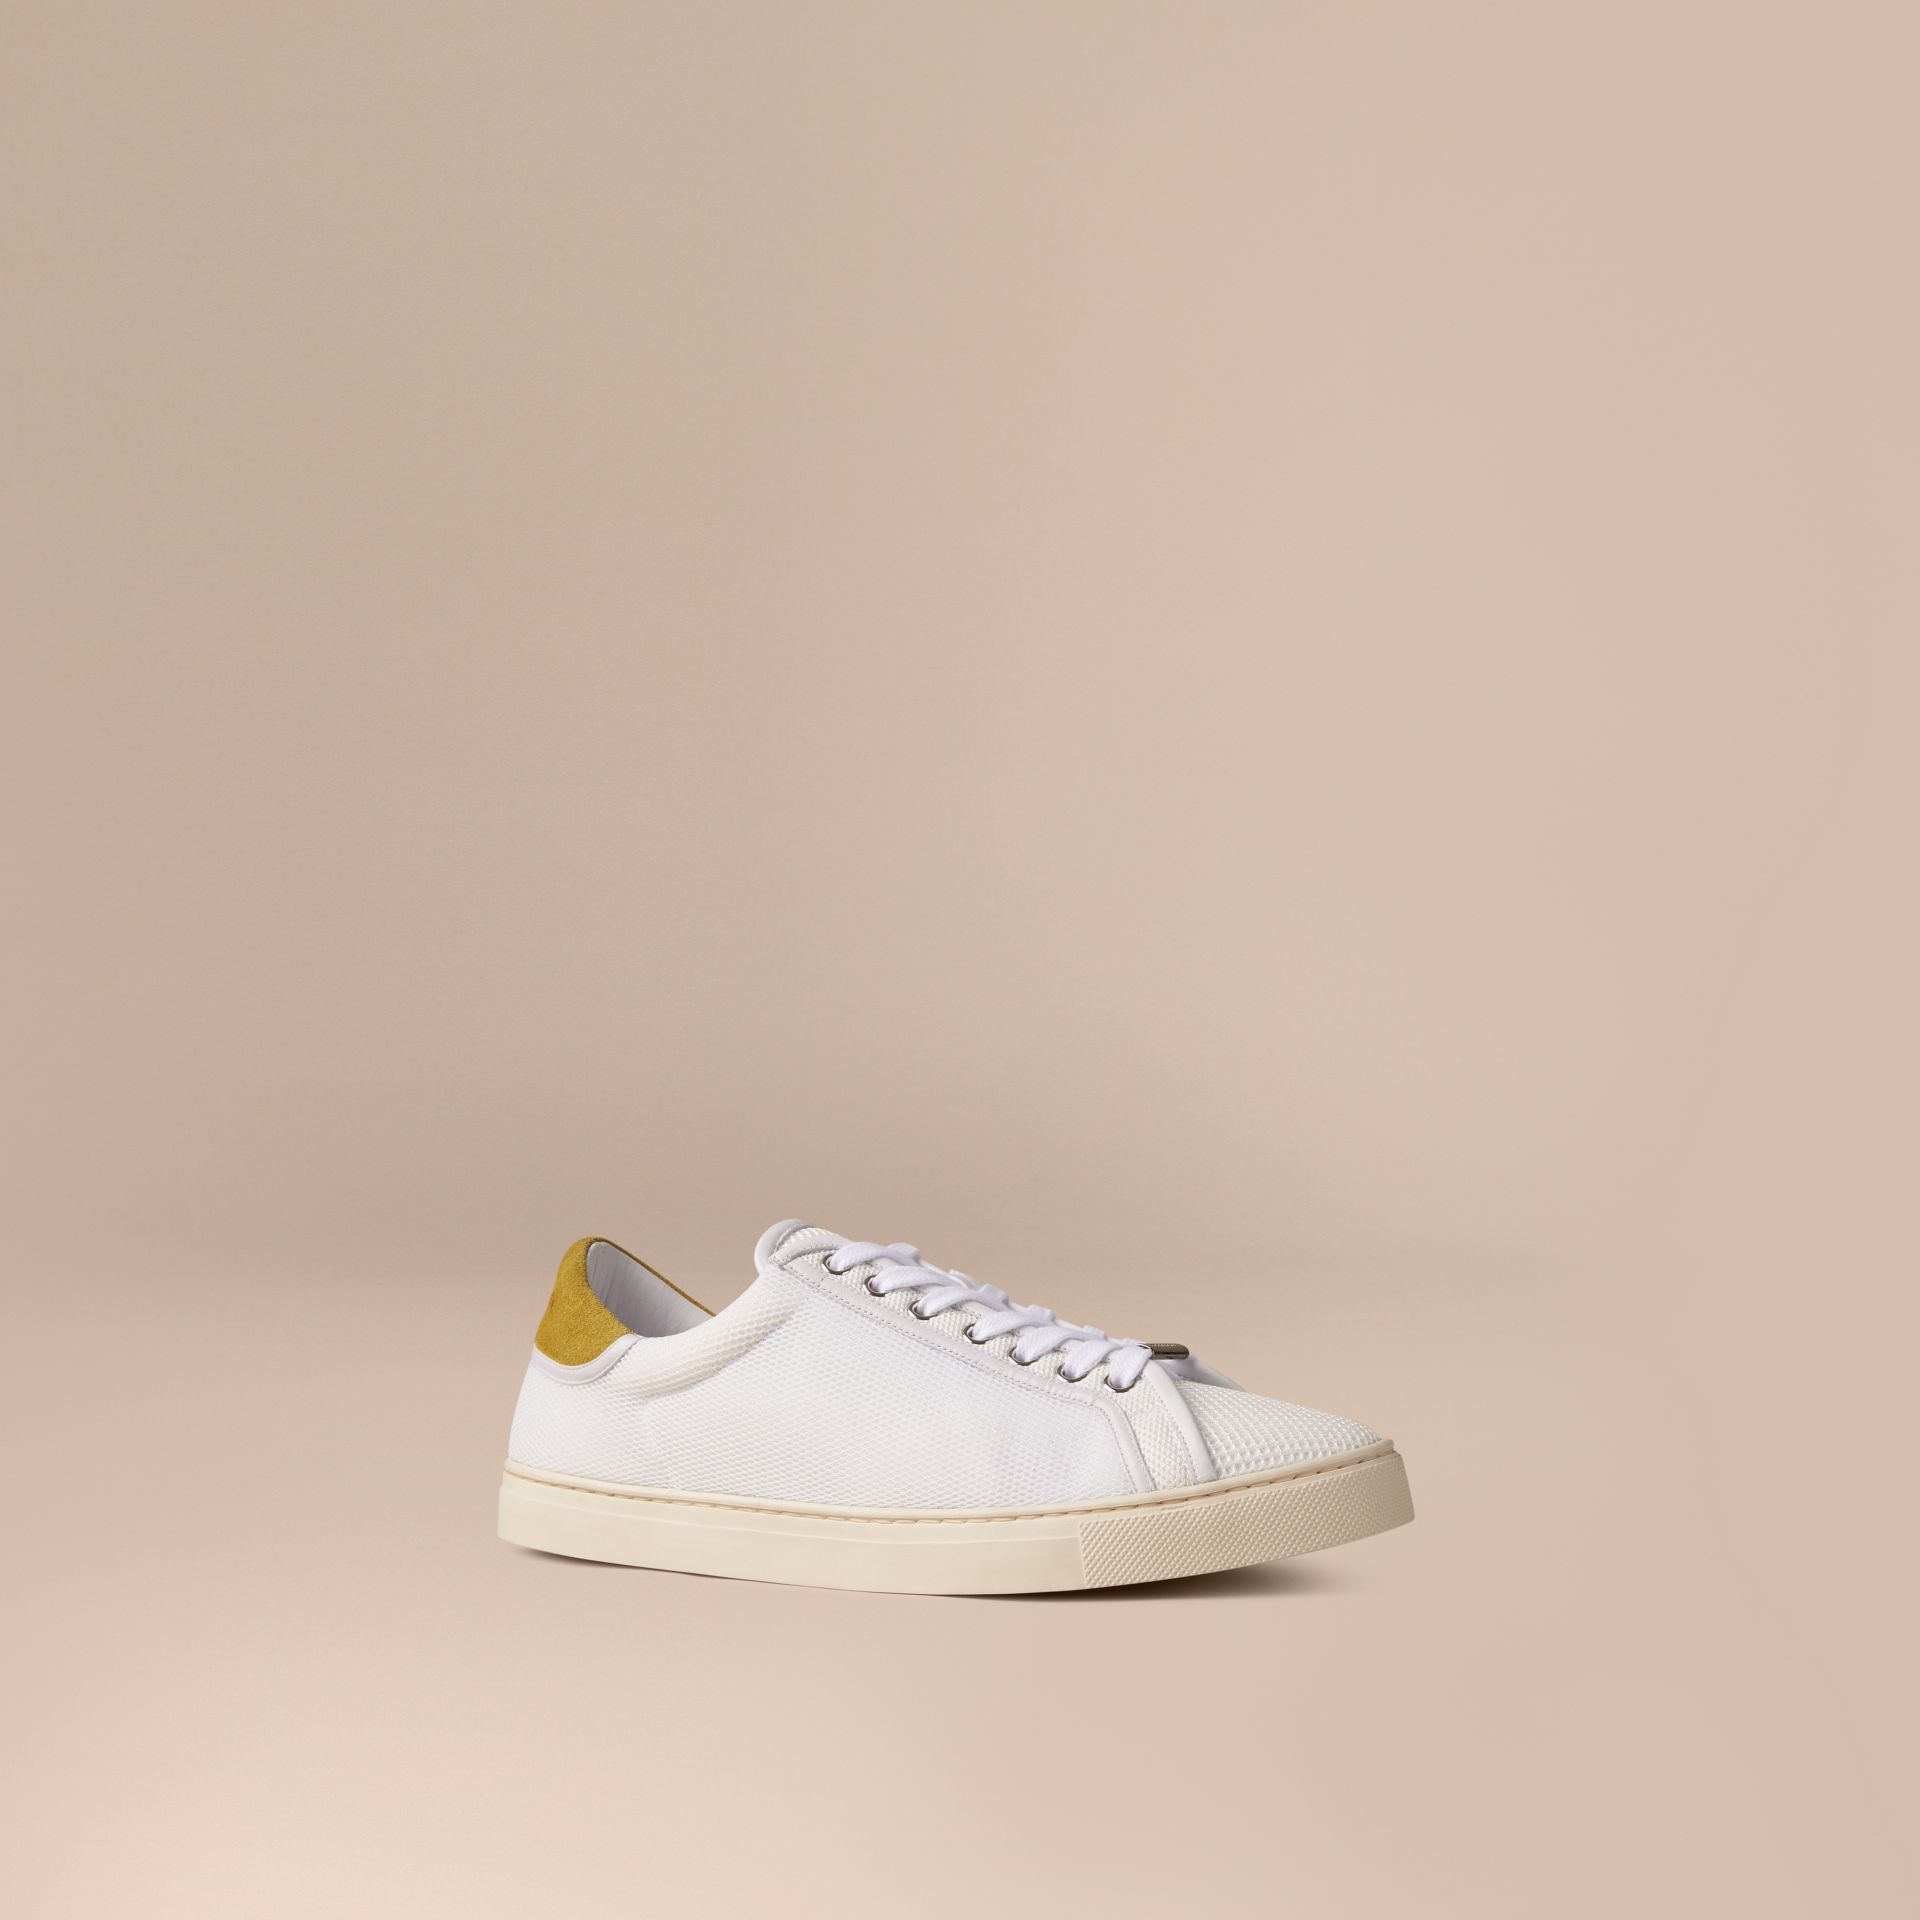 White/mustard yellow Mesh and Leather Trainers White/mustard Yellow - gallery image 1